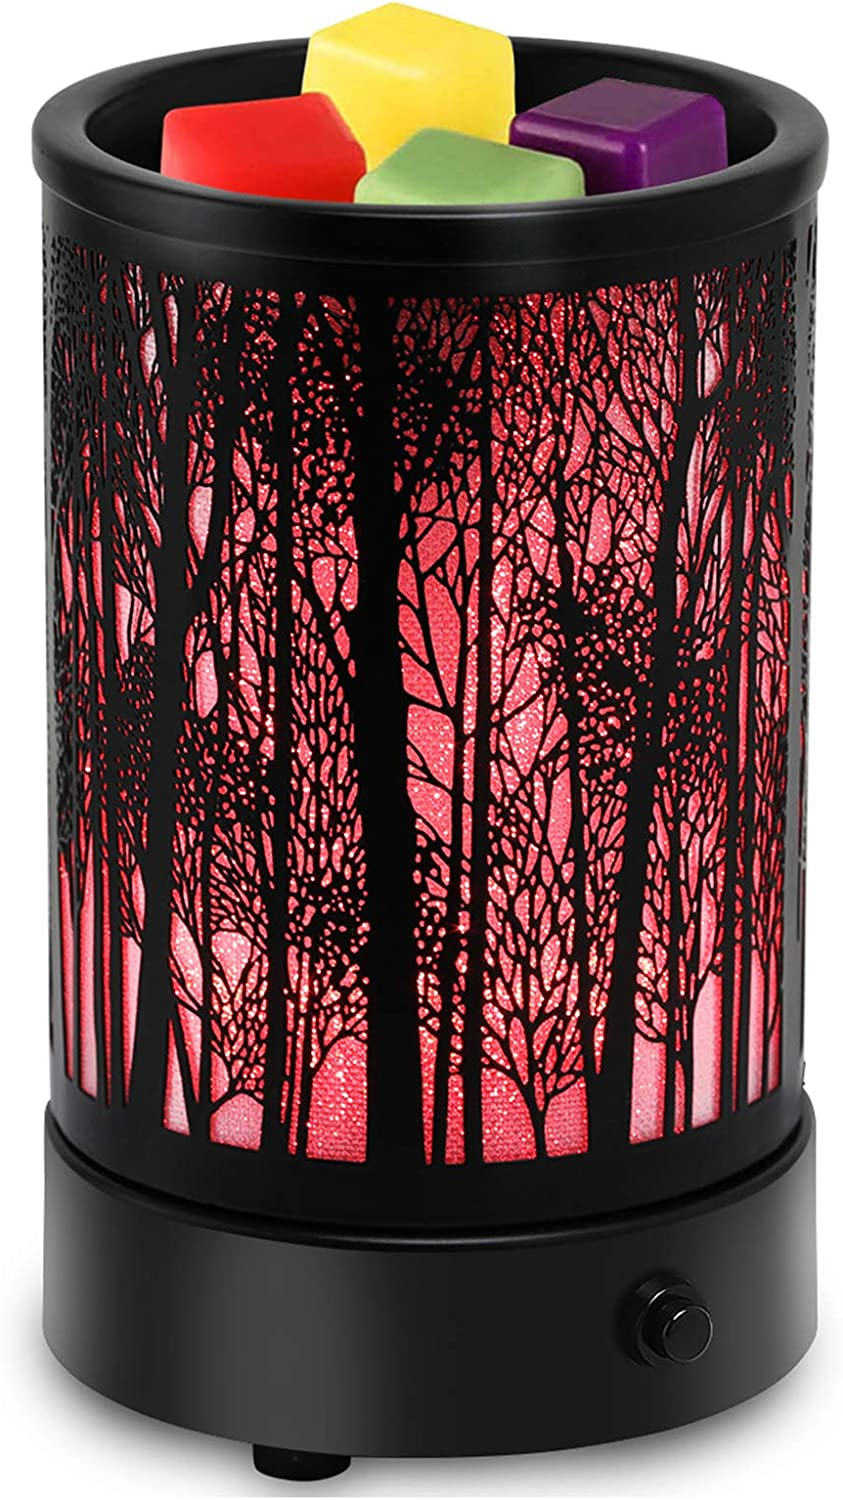 Hituiter christmas wax warmer for scented wax with 7 Colors LED Lighting Oil lamp Wax Burner Candle Melt Warmer Metal Classic Black Forest Design for Fragrance Home Décor,Gifts